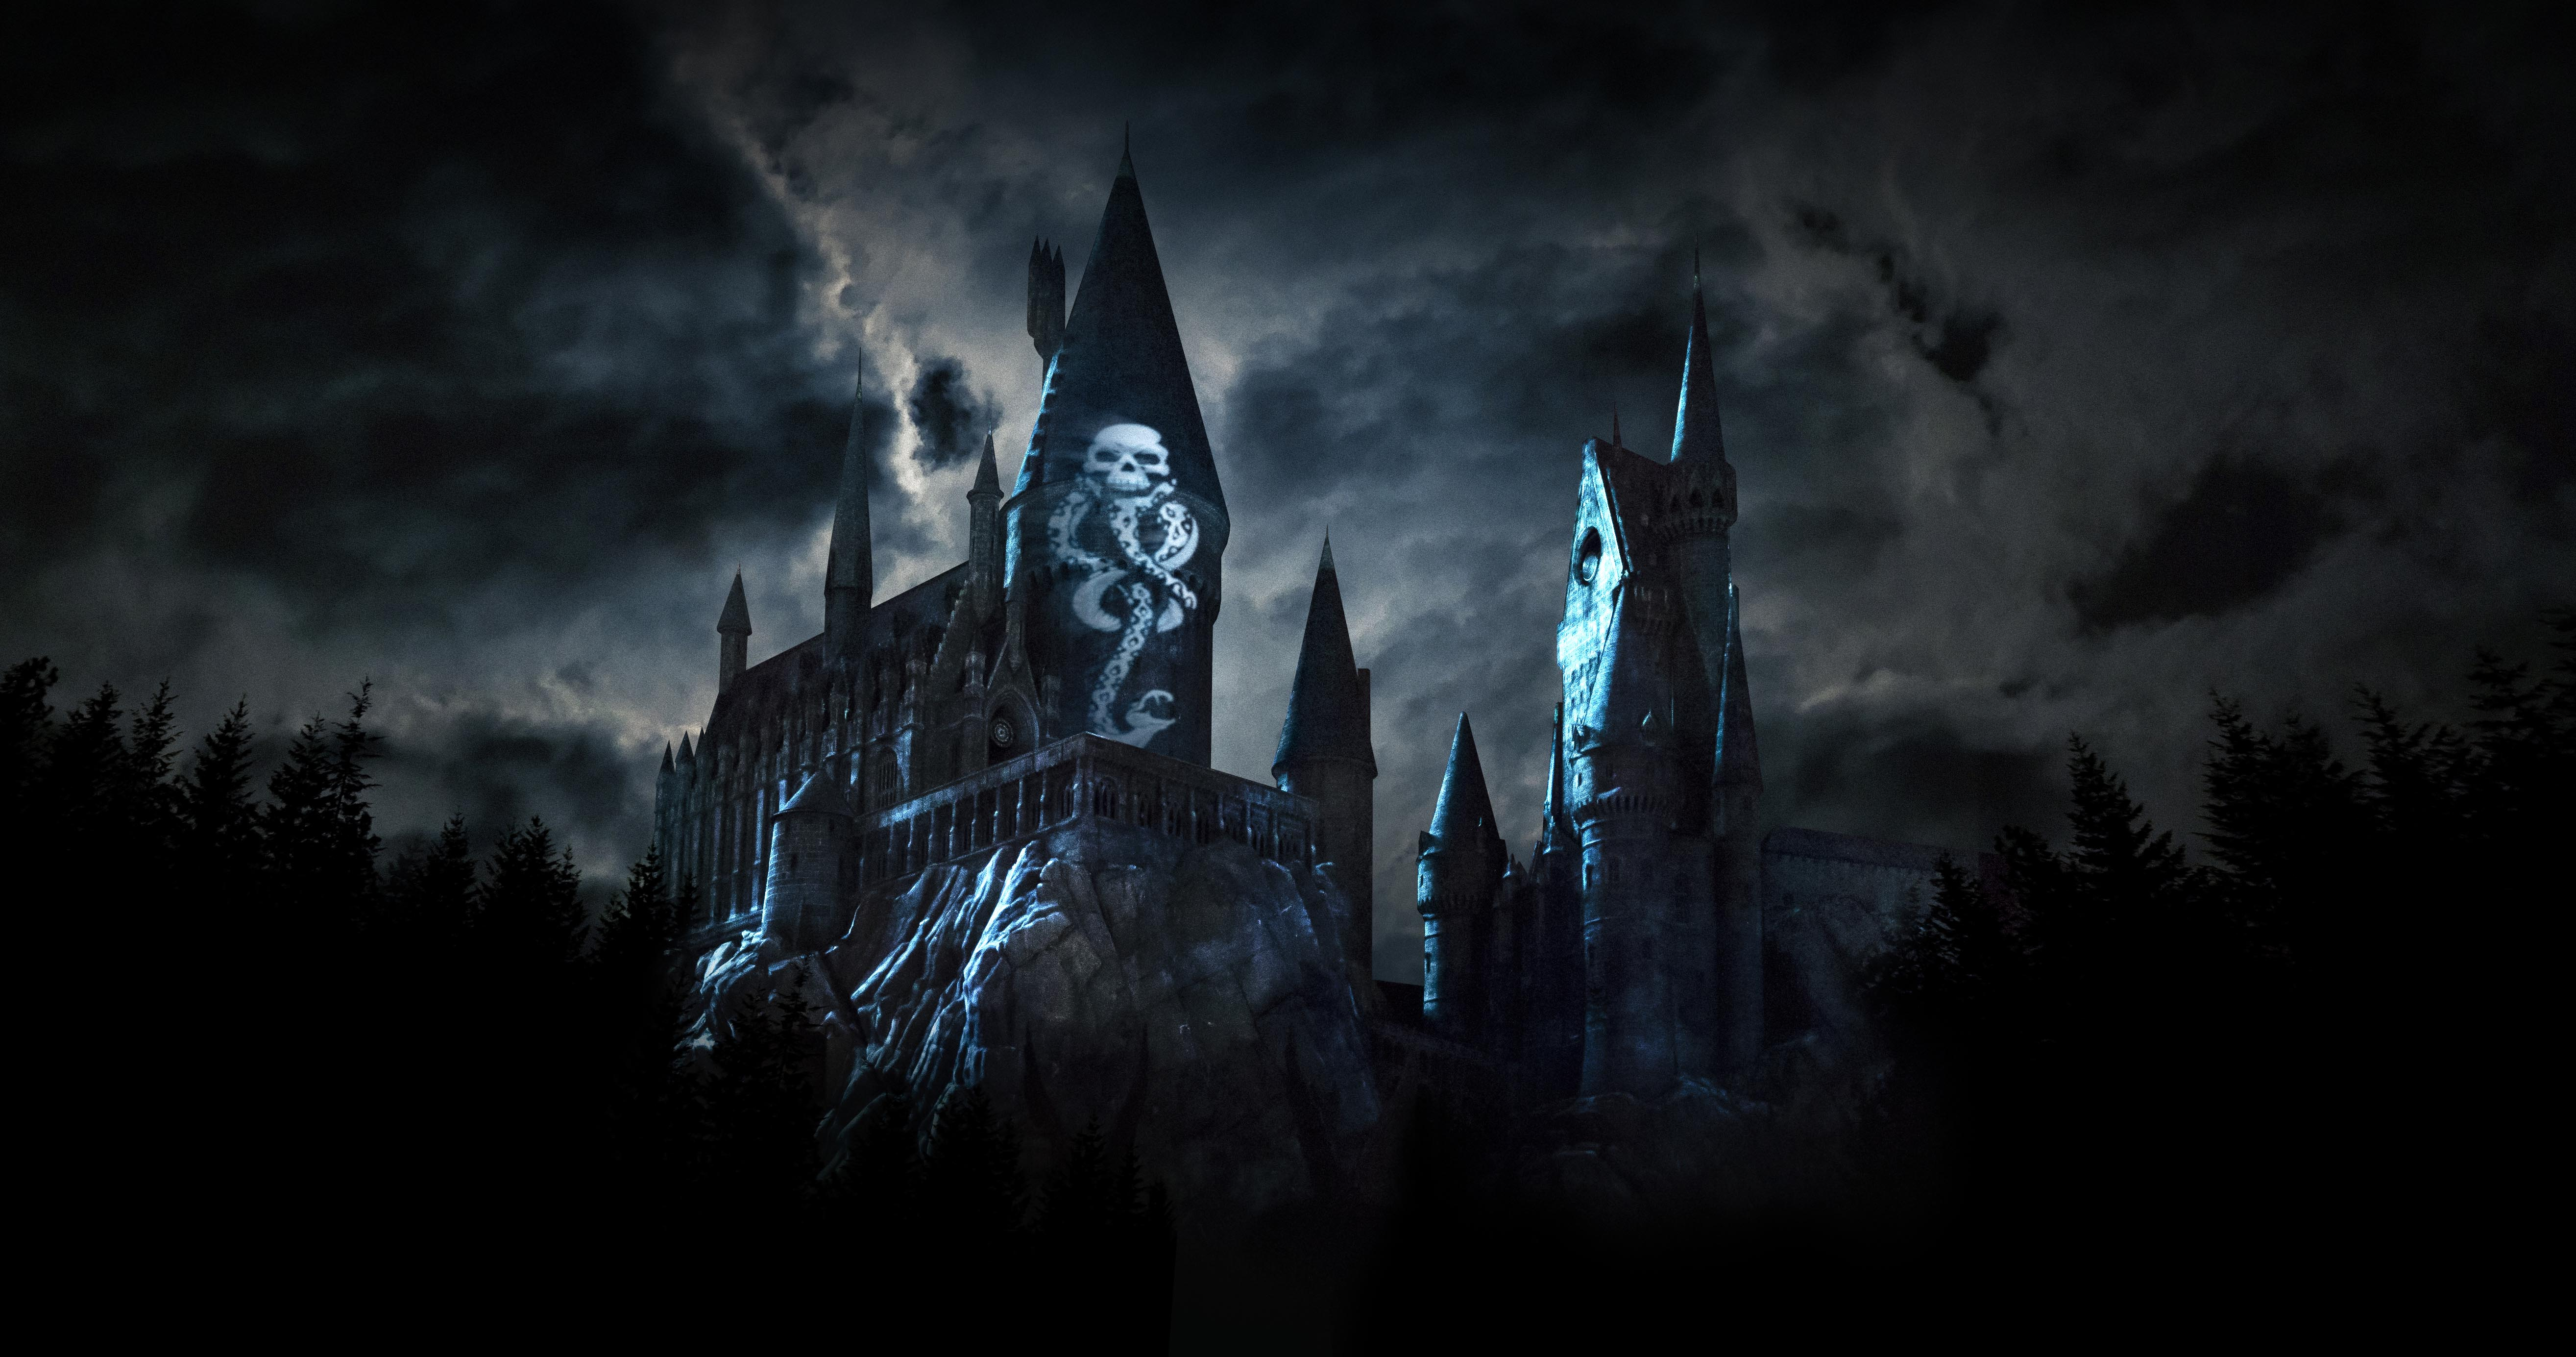 Universal Studios Dark Arts projection experience